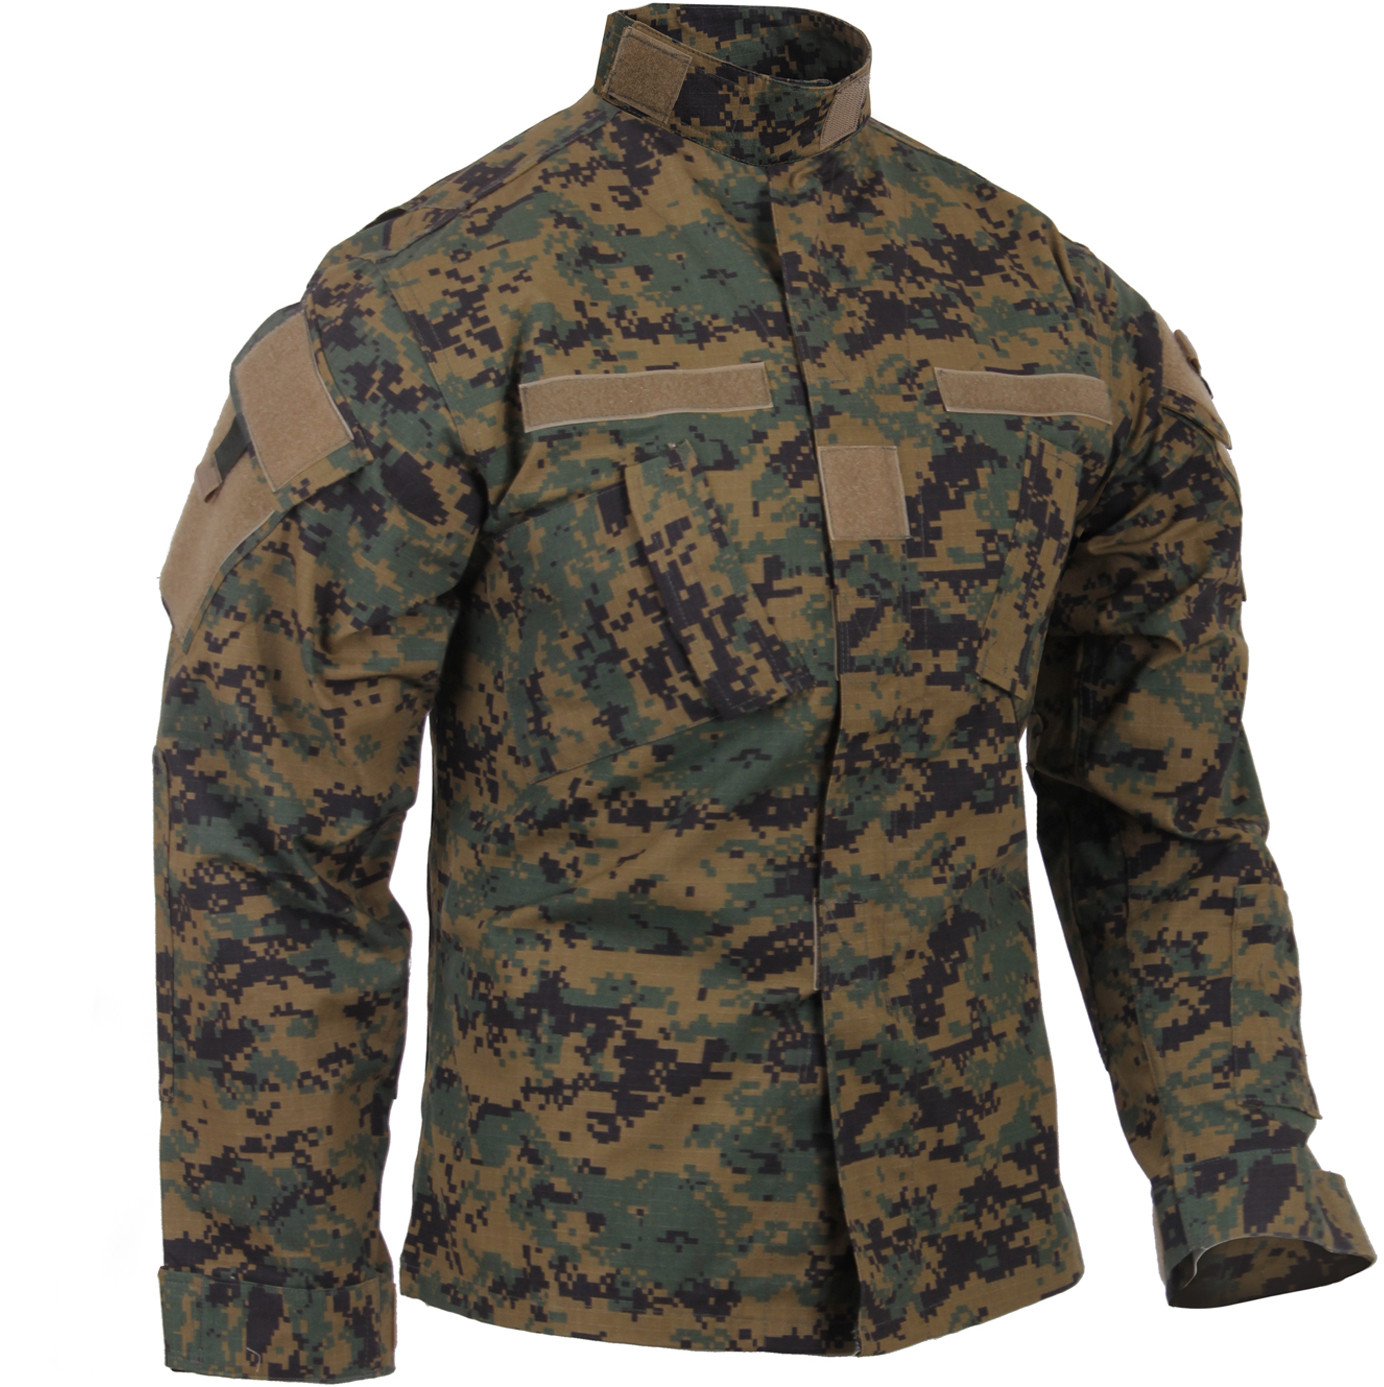 Woodland Digital Camouflage Combat Ready Tactical Military Uniform Shirt 10c89a870339